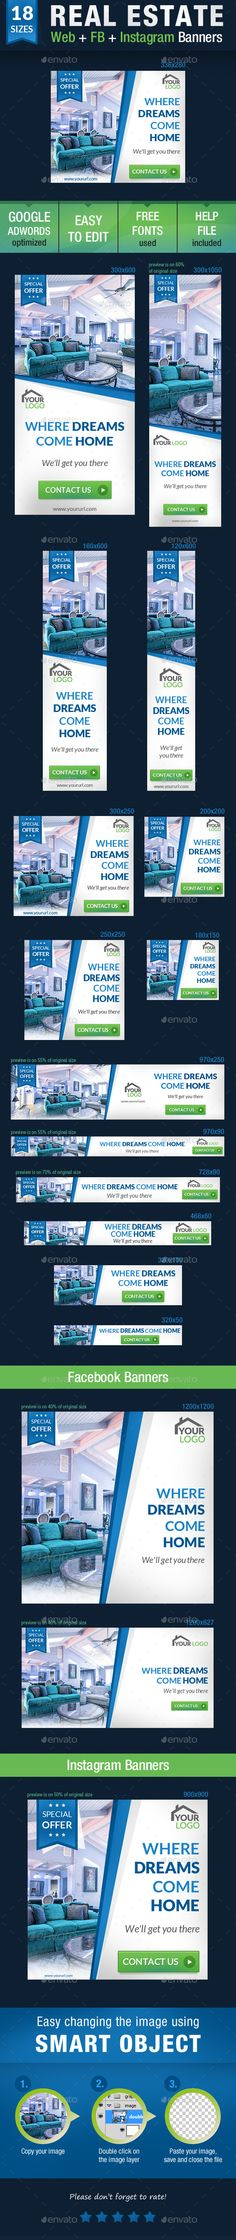 Real Estate Web + FB + Instagram Banners Templates PSD. Download here: http://graphicriver.net/item/real-estate-web-fb-instagram-banners/15191939?ref=ksioks